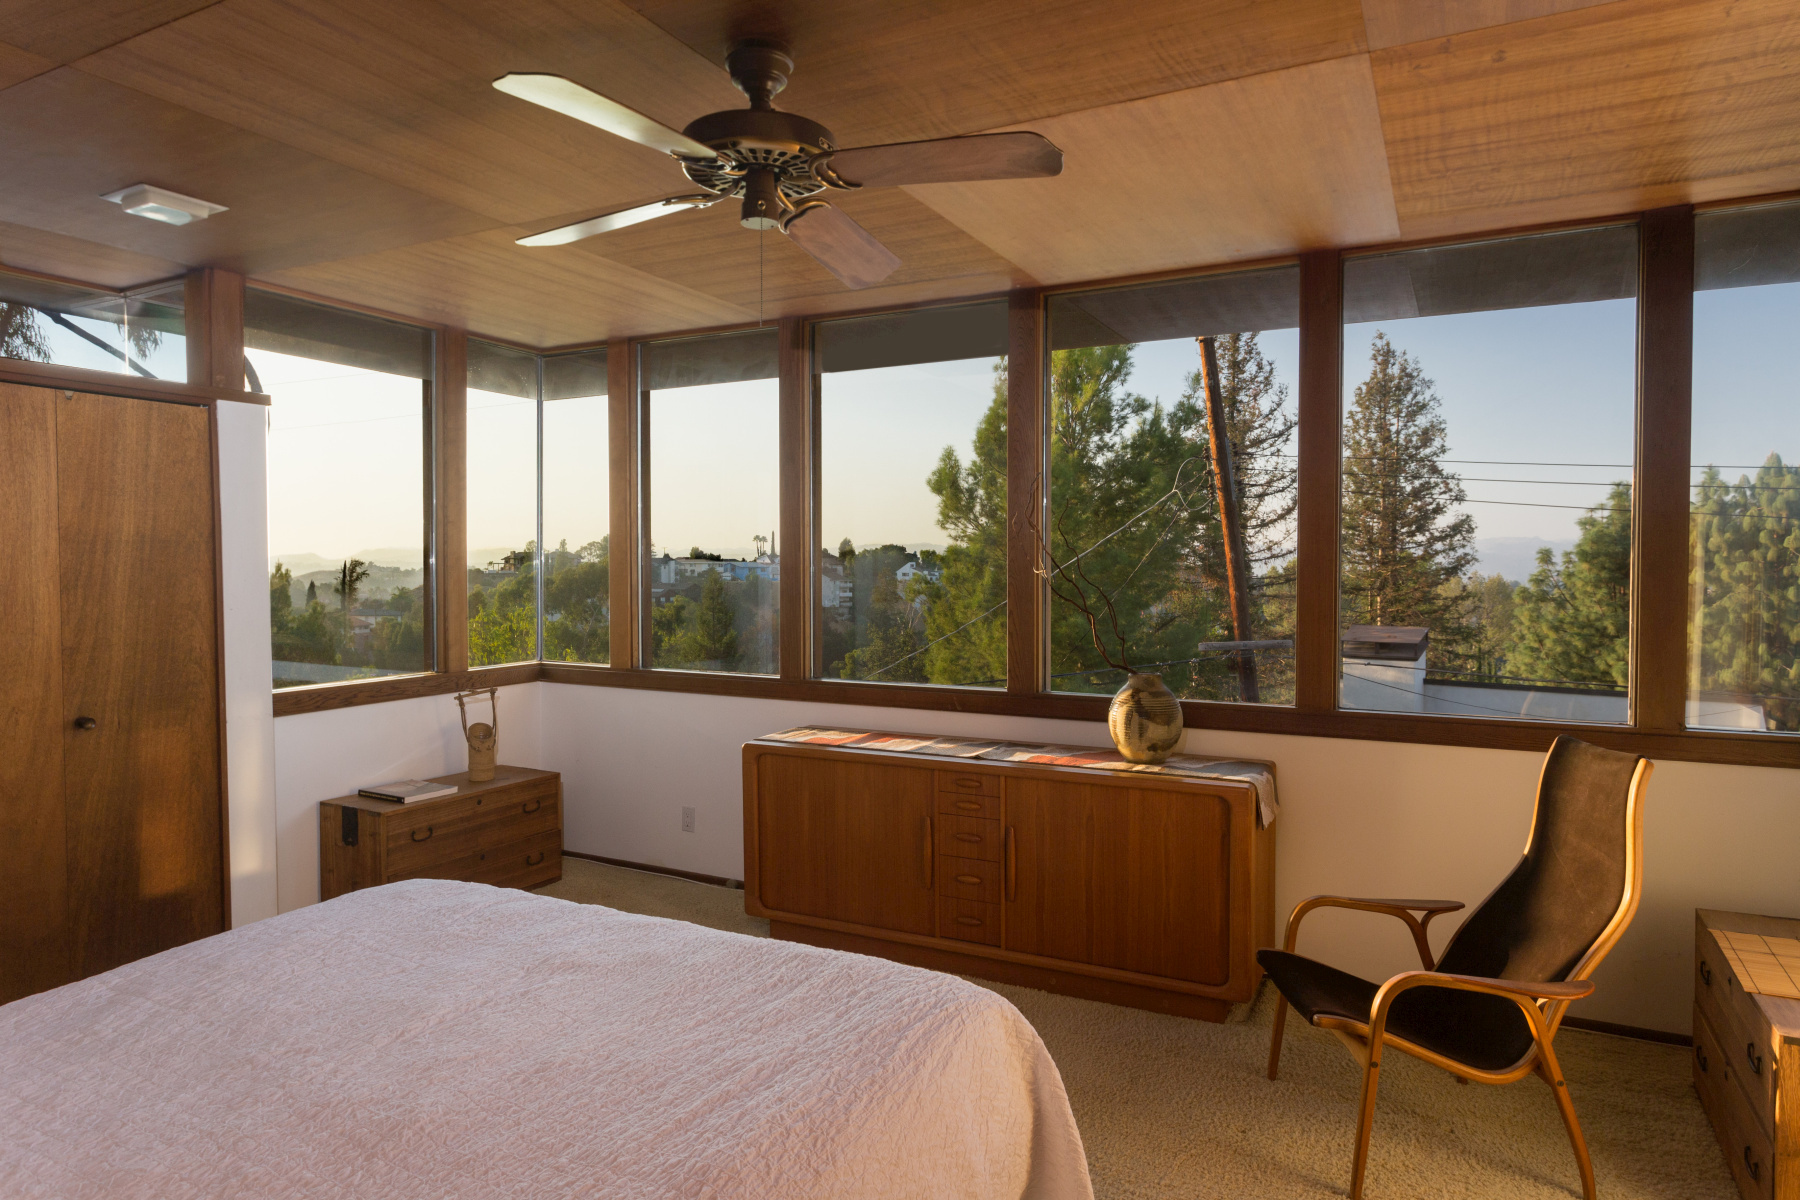 Midcentury Modern House By Rex Lotery For Sale For 14M